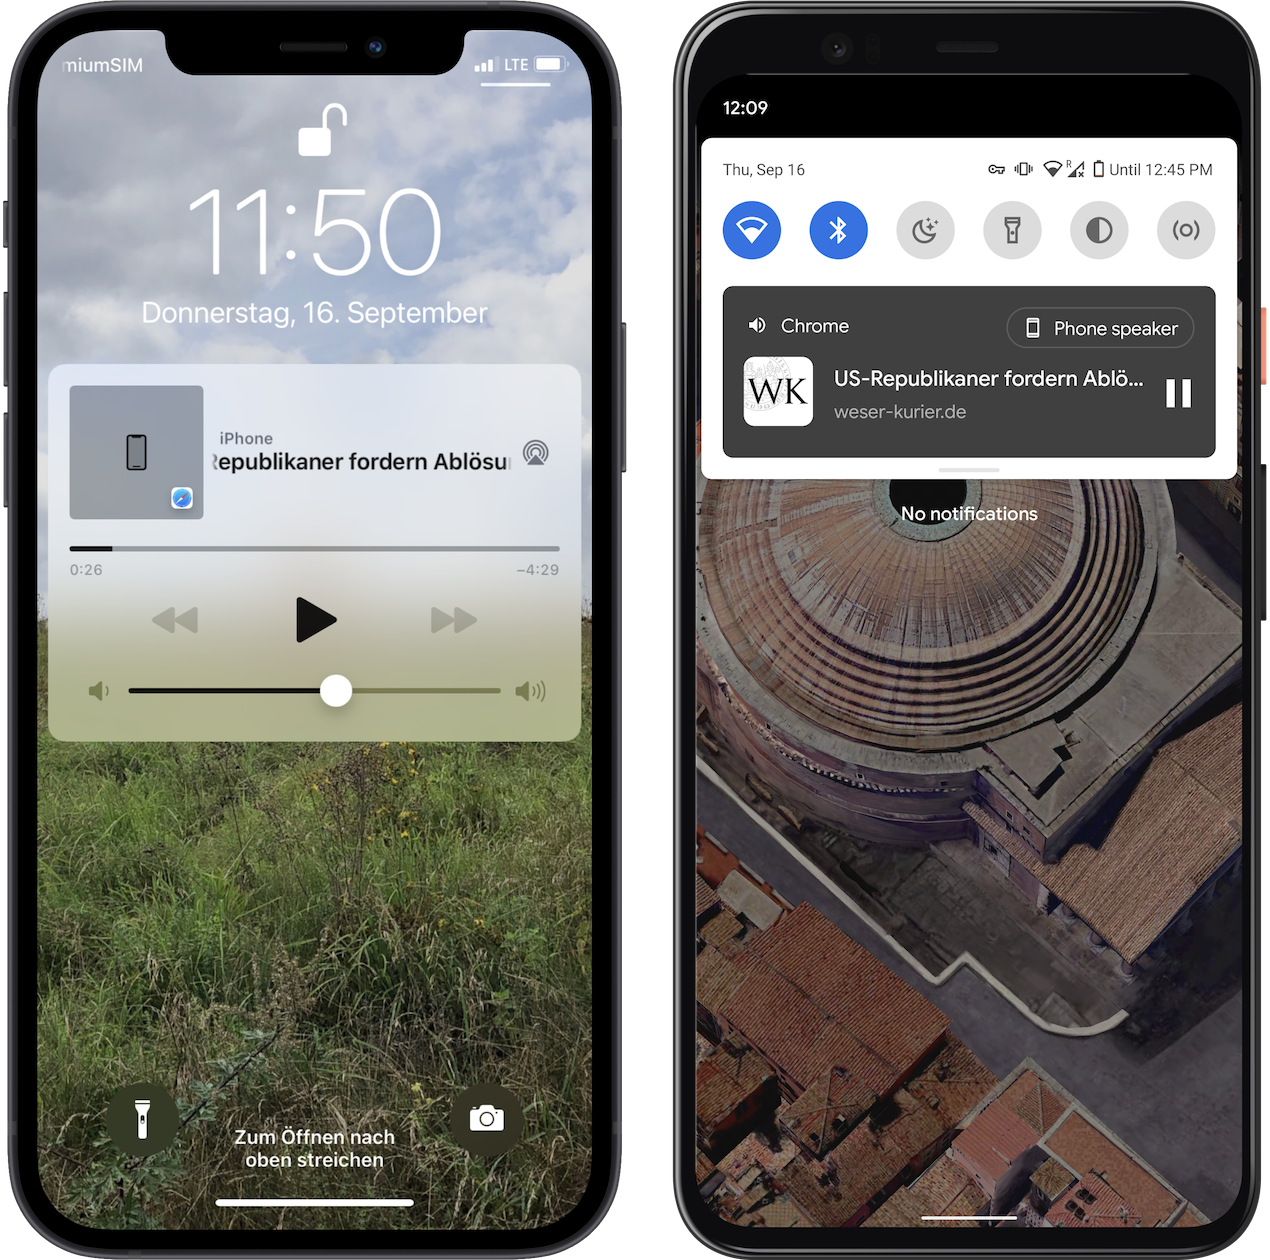 BotTalk Web Player supports both iOS and Android native audio controls